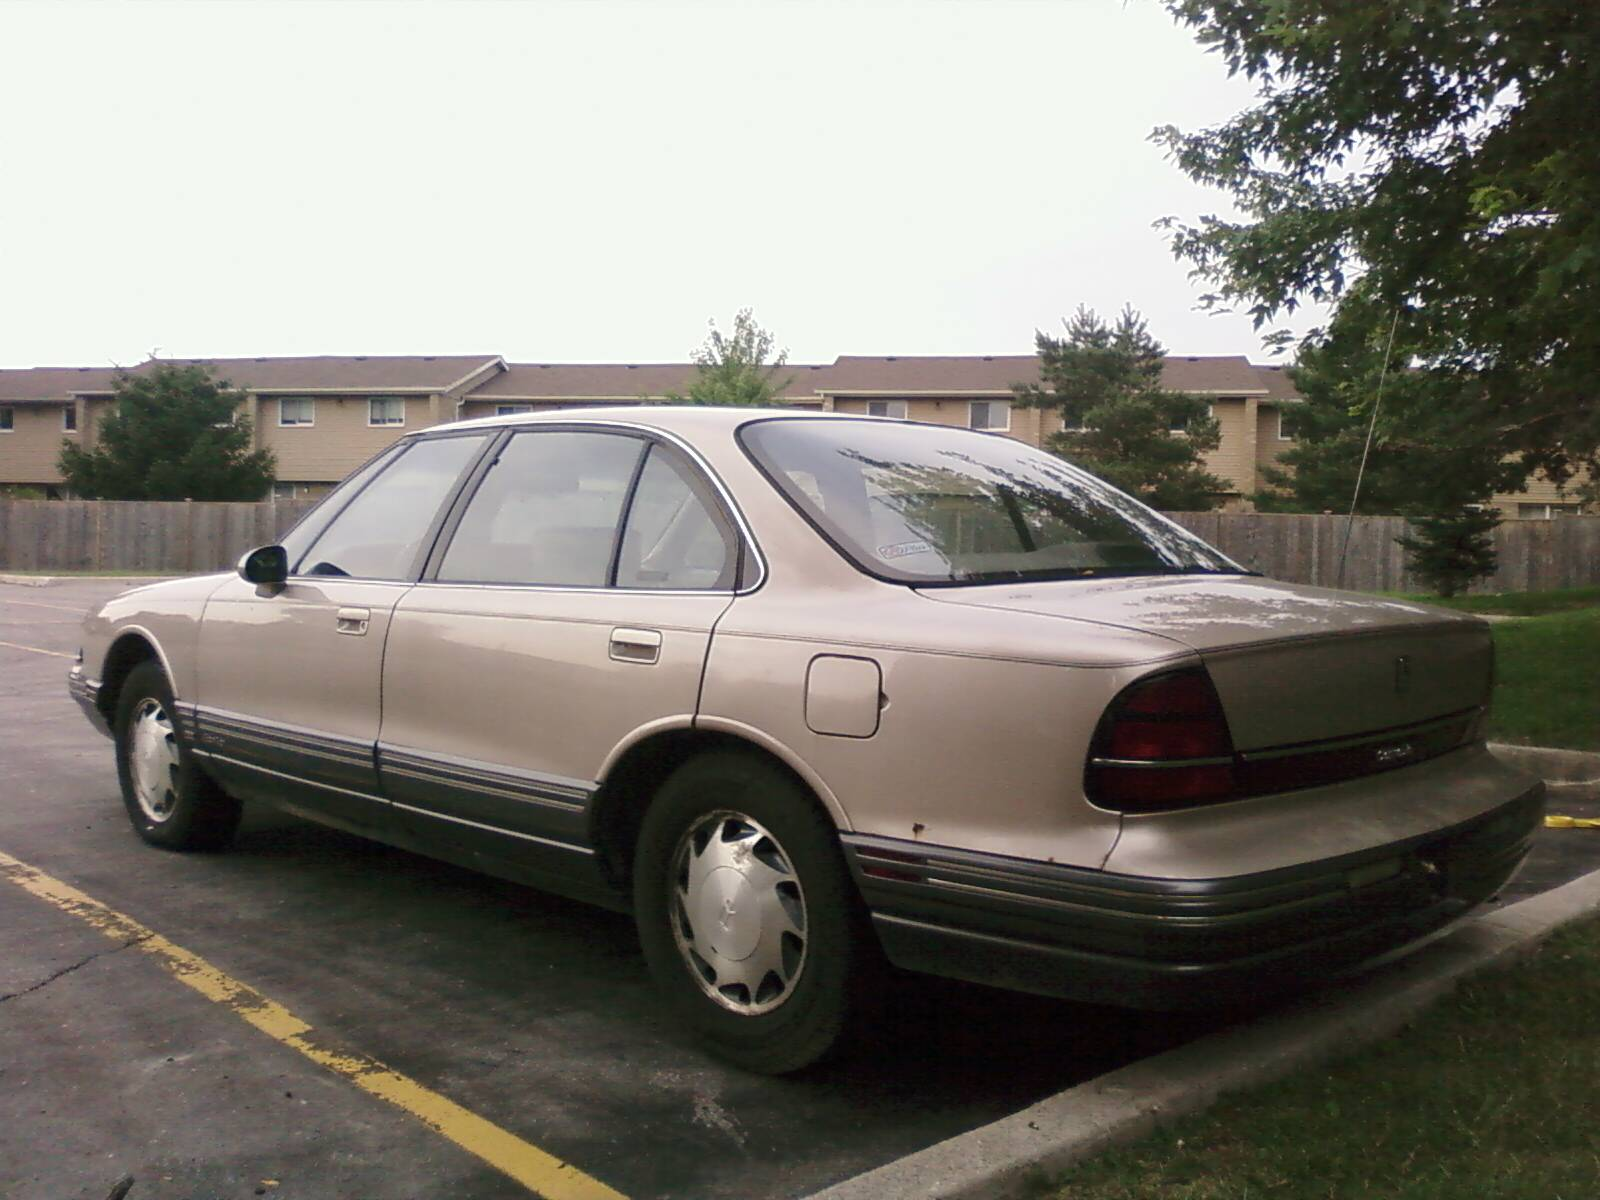 File:1992-93 Oldsmobile 88.jpg - Wikimedia Commons